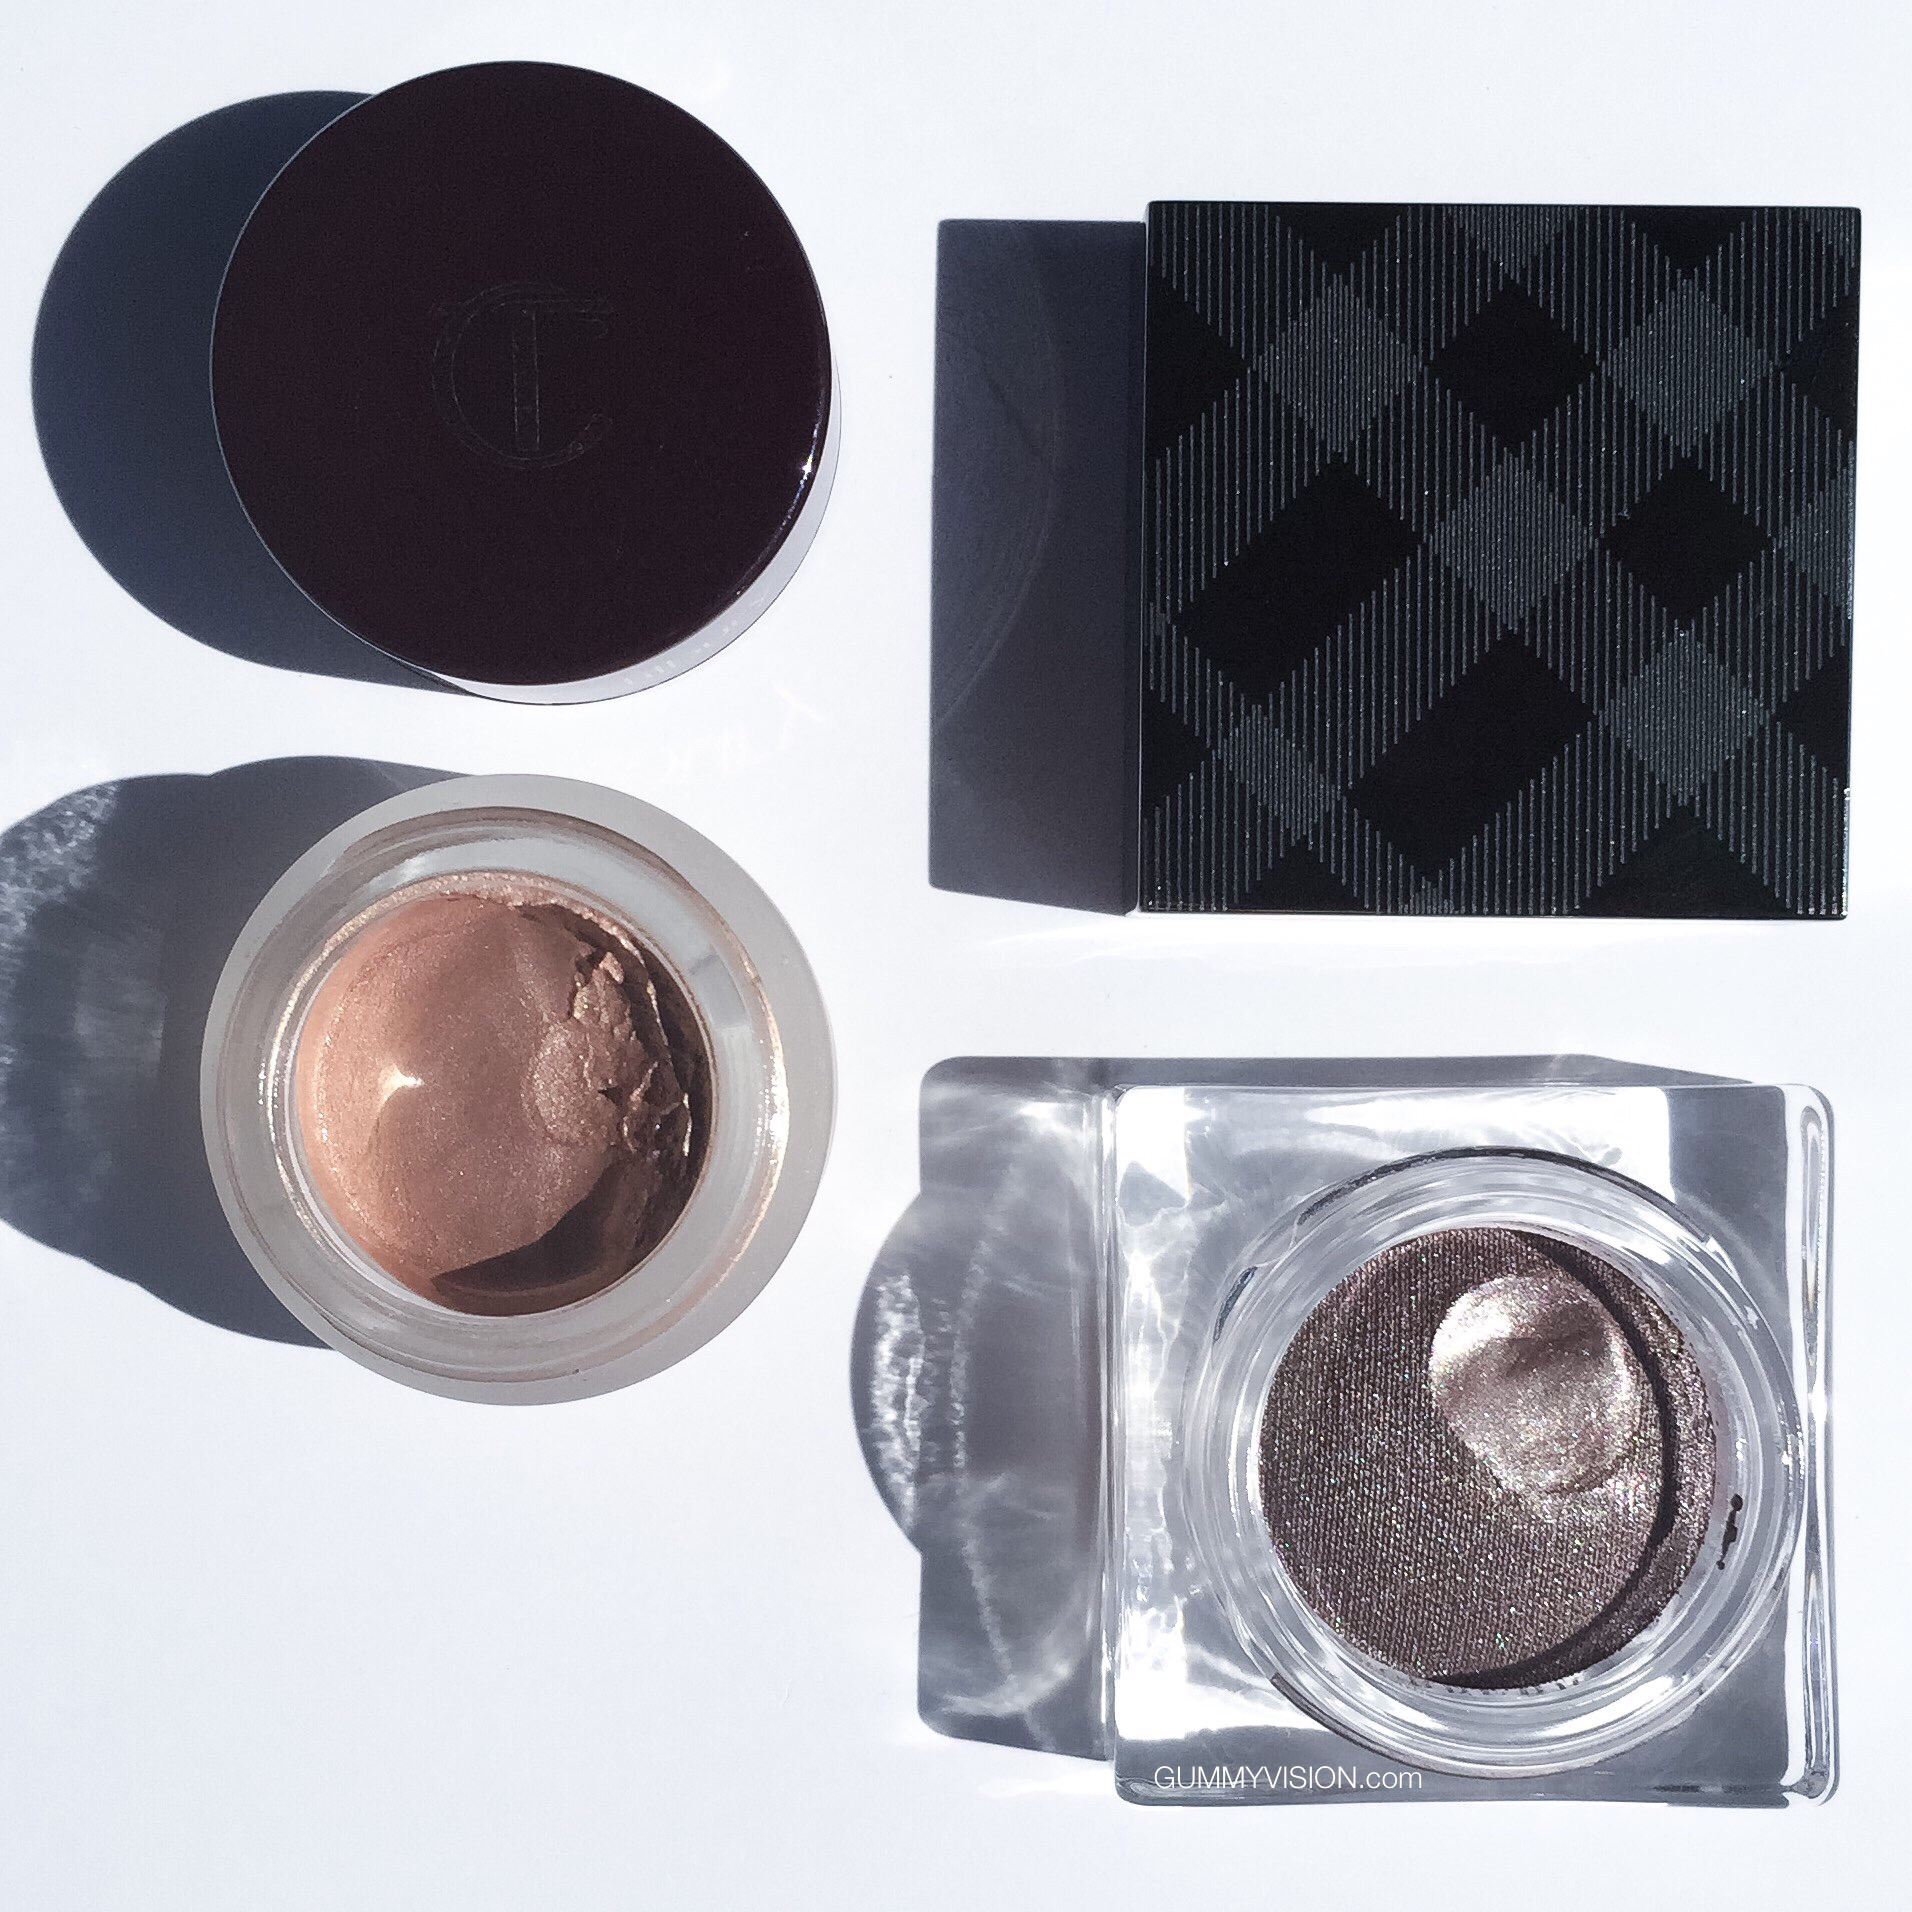 Cream Shadows: Charlotte Tilbury Eyes to Mesmerize in Norma Jean, Burberry Eye Colour Cream in Dusky Mauve - gummyvision.com